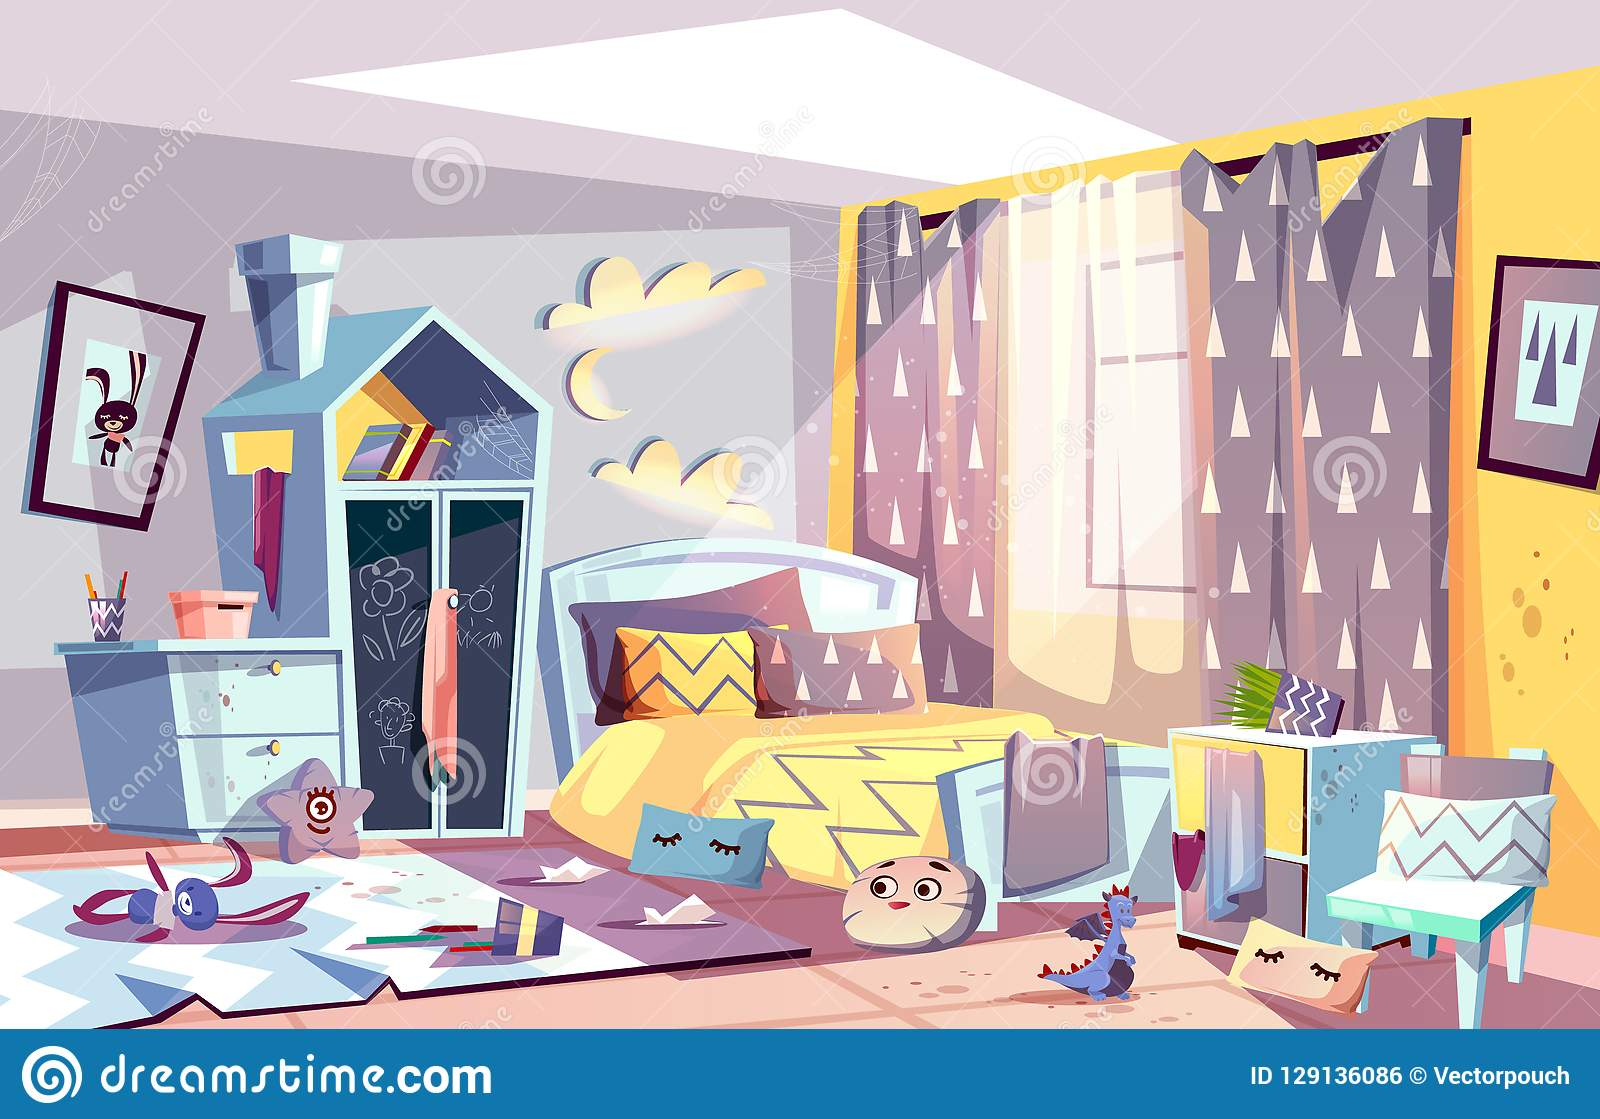 Kids Bedroom In Mess Cartoon Vector Illustration Stock Vector ... on military mobile home, dirty mobile home, shower mobile home, beautiful mobile home, black mobile home, disgusting mobile home, retro mobile home, big mobile home, ugly mobile home, mexican mobile home, wild mobile home, office mobile home, spirit mobile home, cute mobile home, crappy mobile home, funny mobile home, beach mobile home, rotten mobile home,